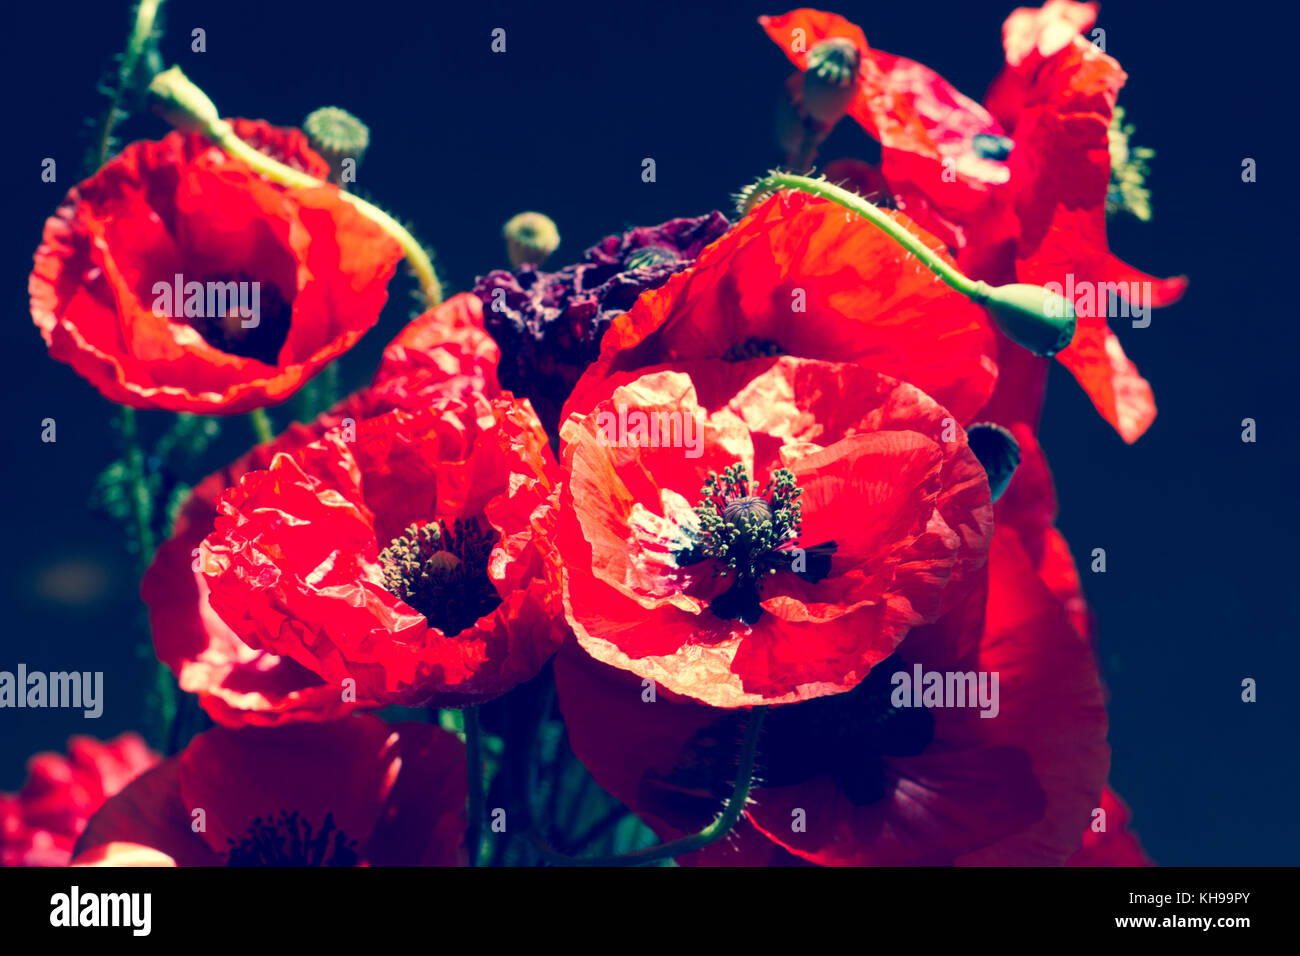 Bouquet of poppies. Red flowers sign of remembrance day. Vintage - Stock Image